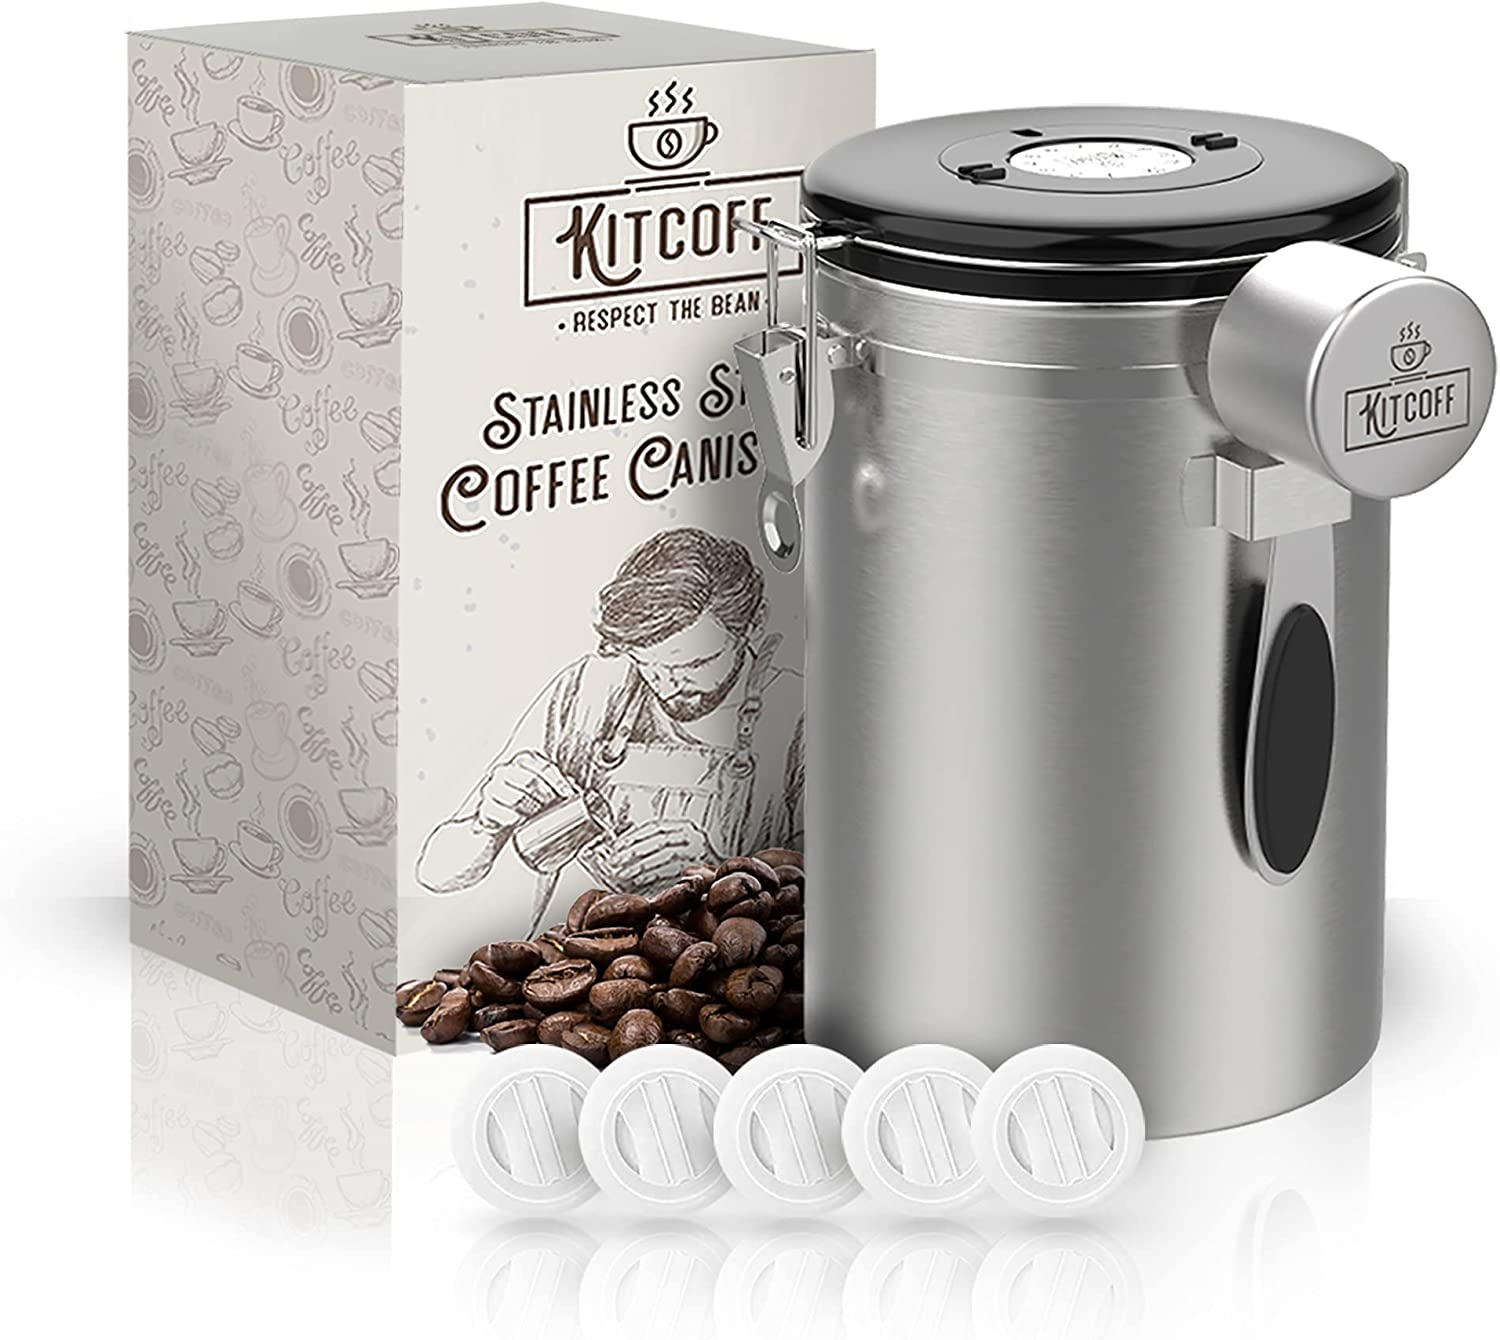 Kitcoff Coffee Canister - Set with Spoon, Extra Valve Filters - Stainless Steel, Airtight Seal,Date Tracker on Lid - Food Storage for Flour, Sugar, Loose Leaf & Tea Bags, Cereal, Powder, Ground Beans